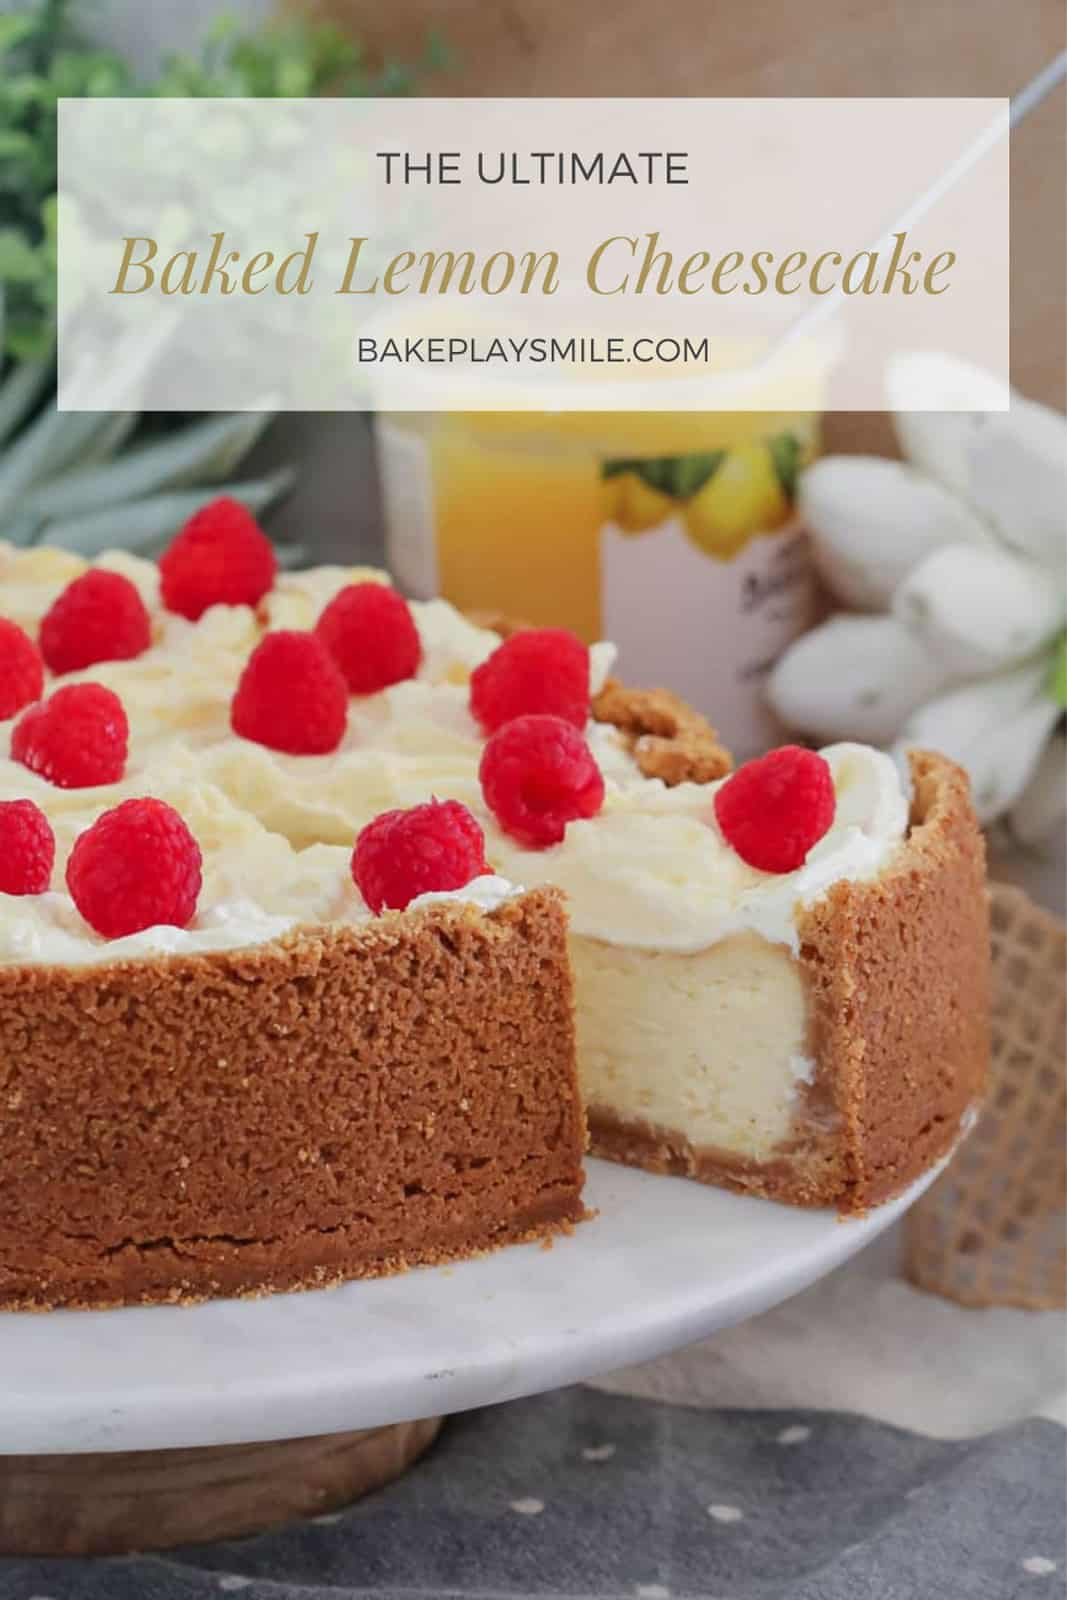 A cheesecake decorated with whipped cream and fresh raspberries on a white cake tray with one slice partly removed.